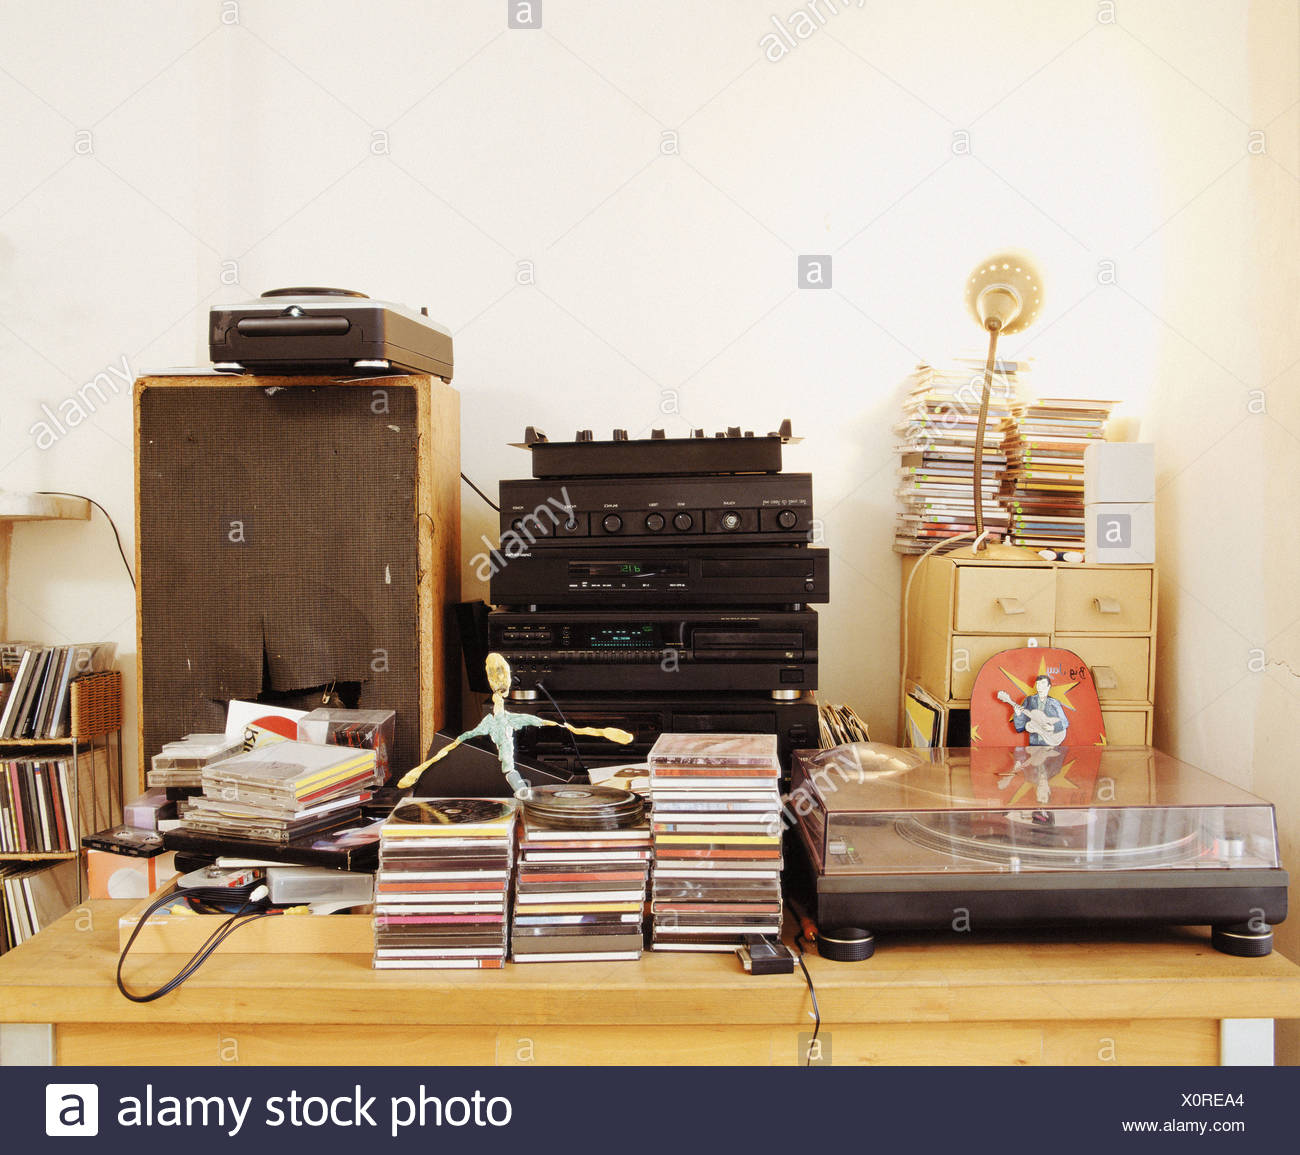 Stereo System Stock Photos U0026 Stereo System Stock Images   Alamy